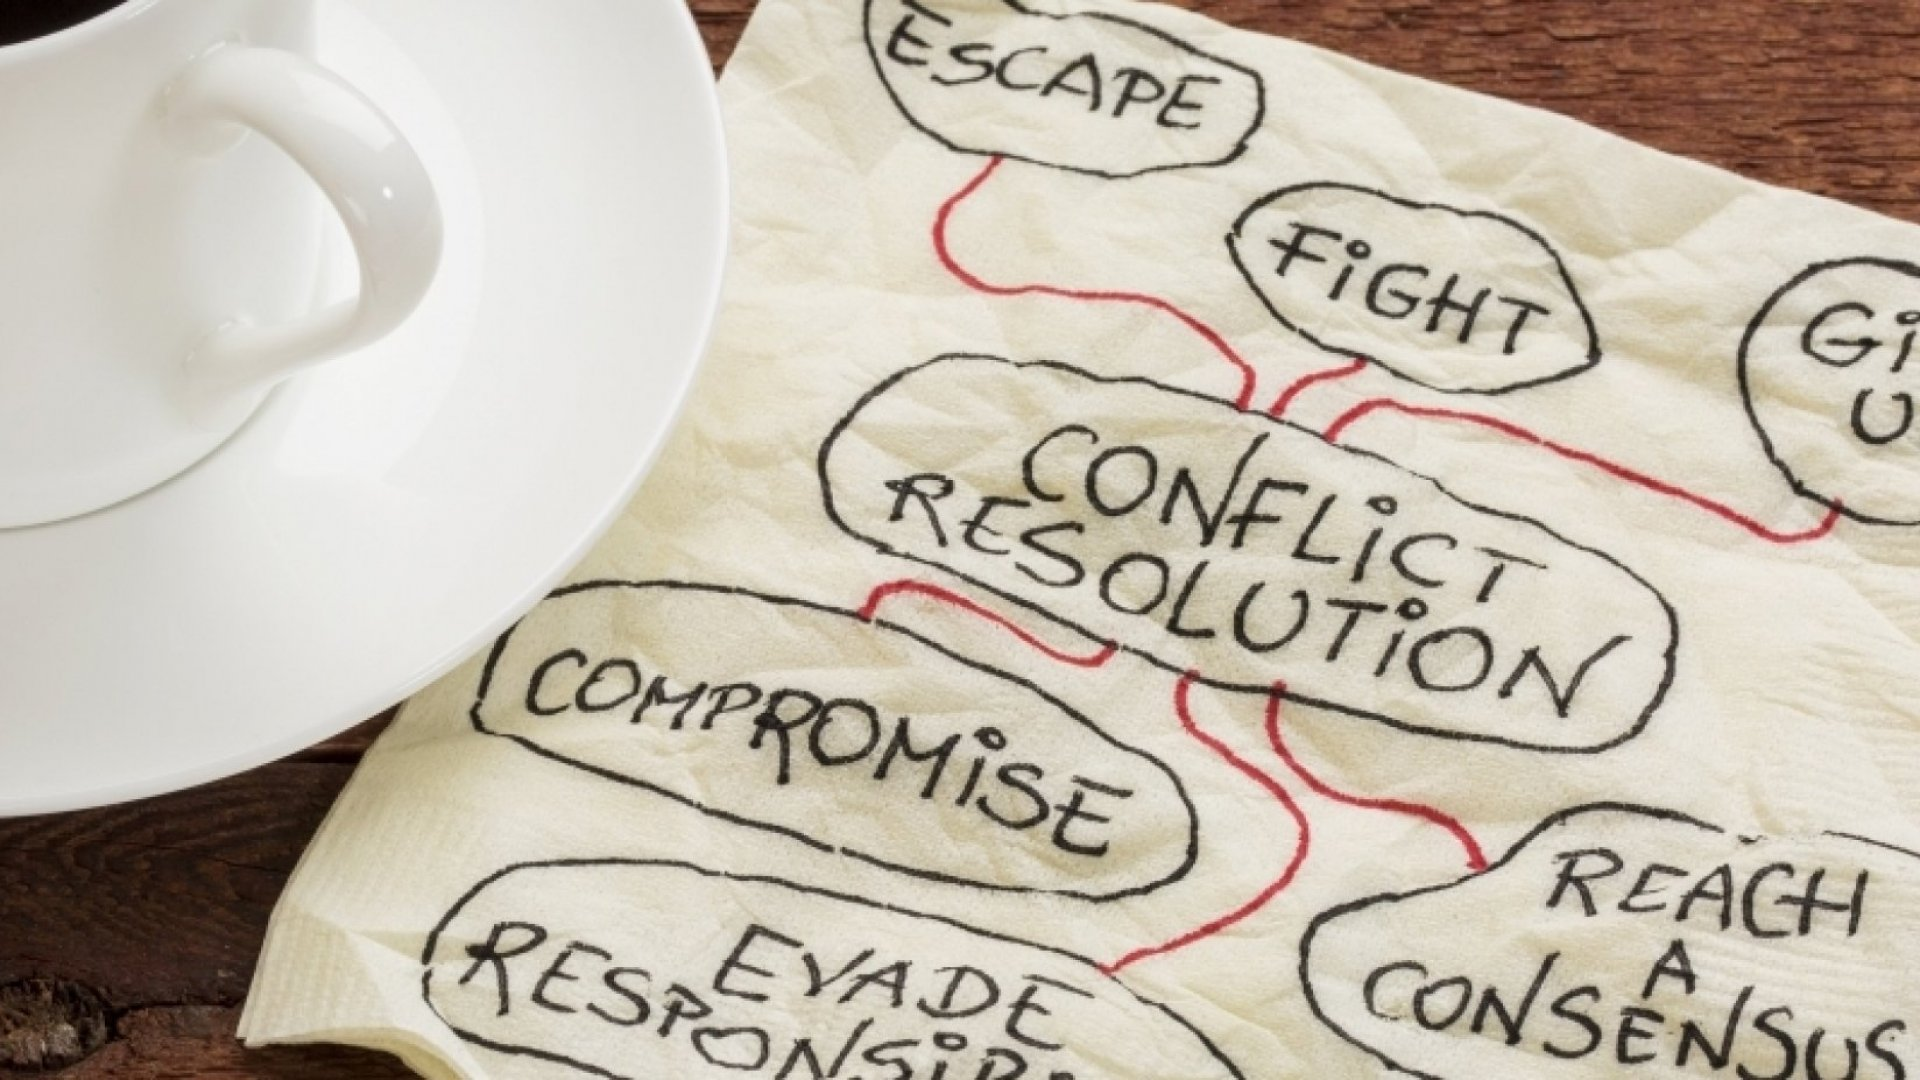 5 Tips for Leaders to Harness Conflict and Communicate Calmly